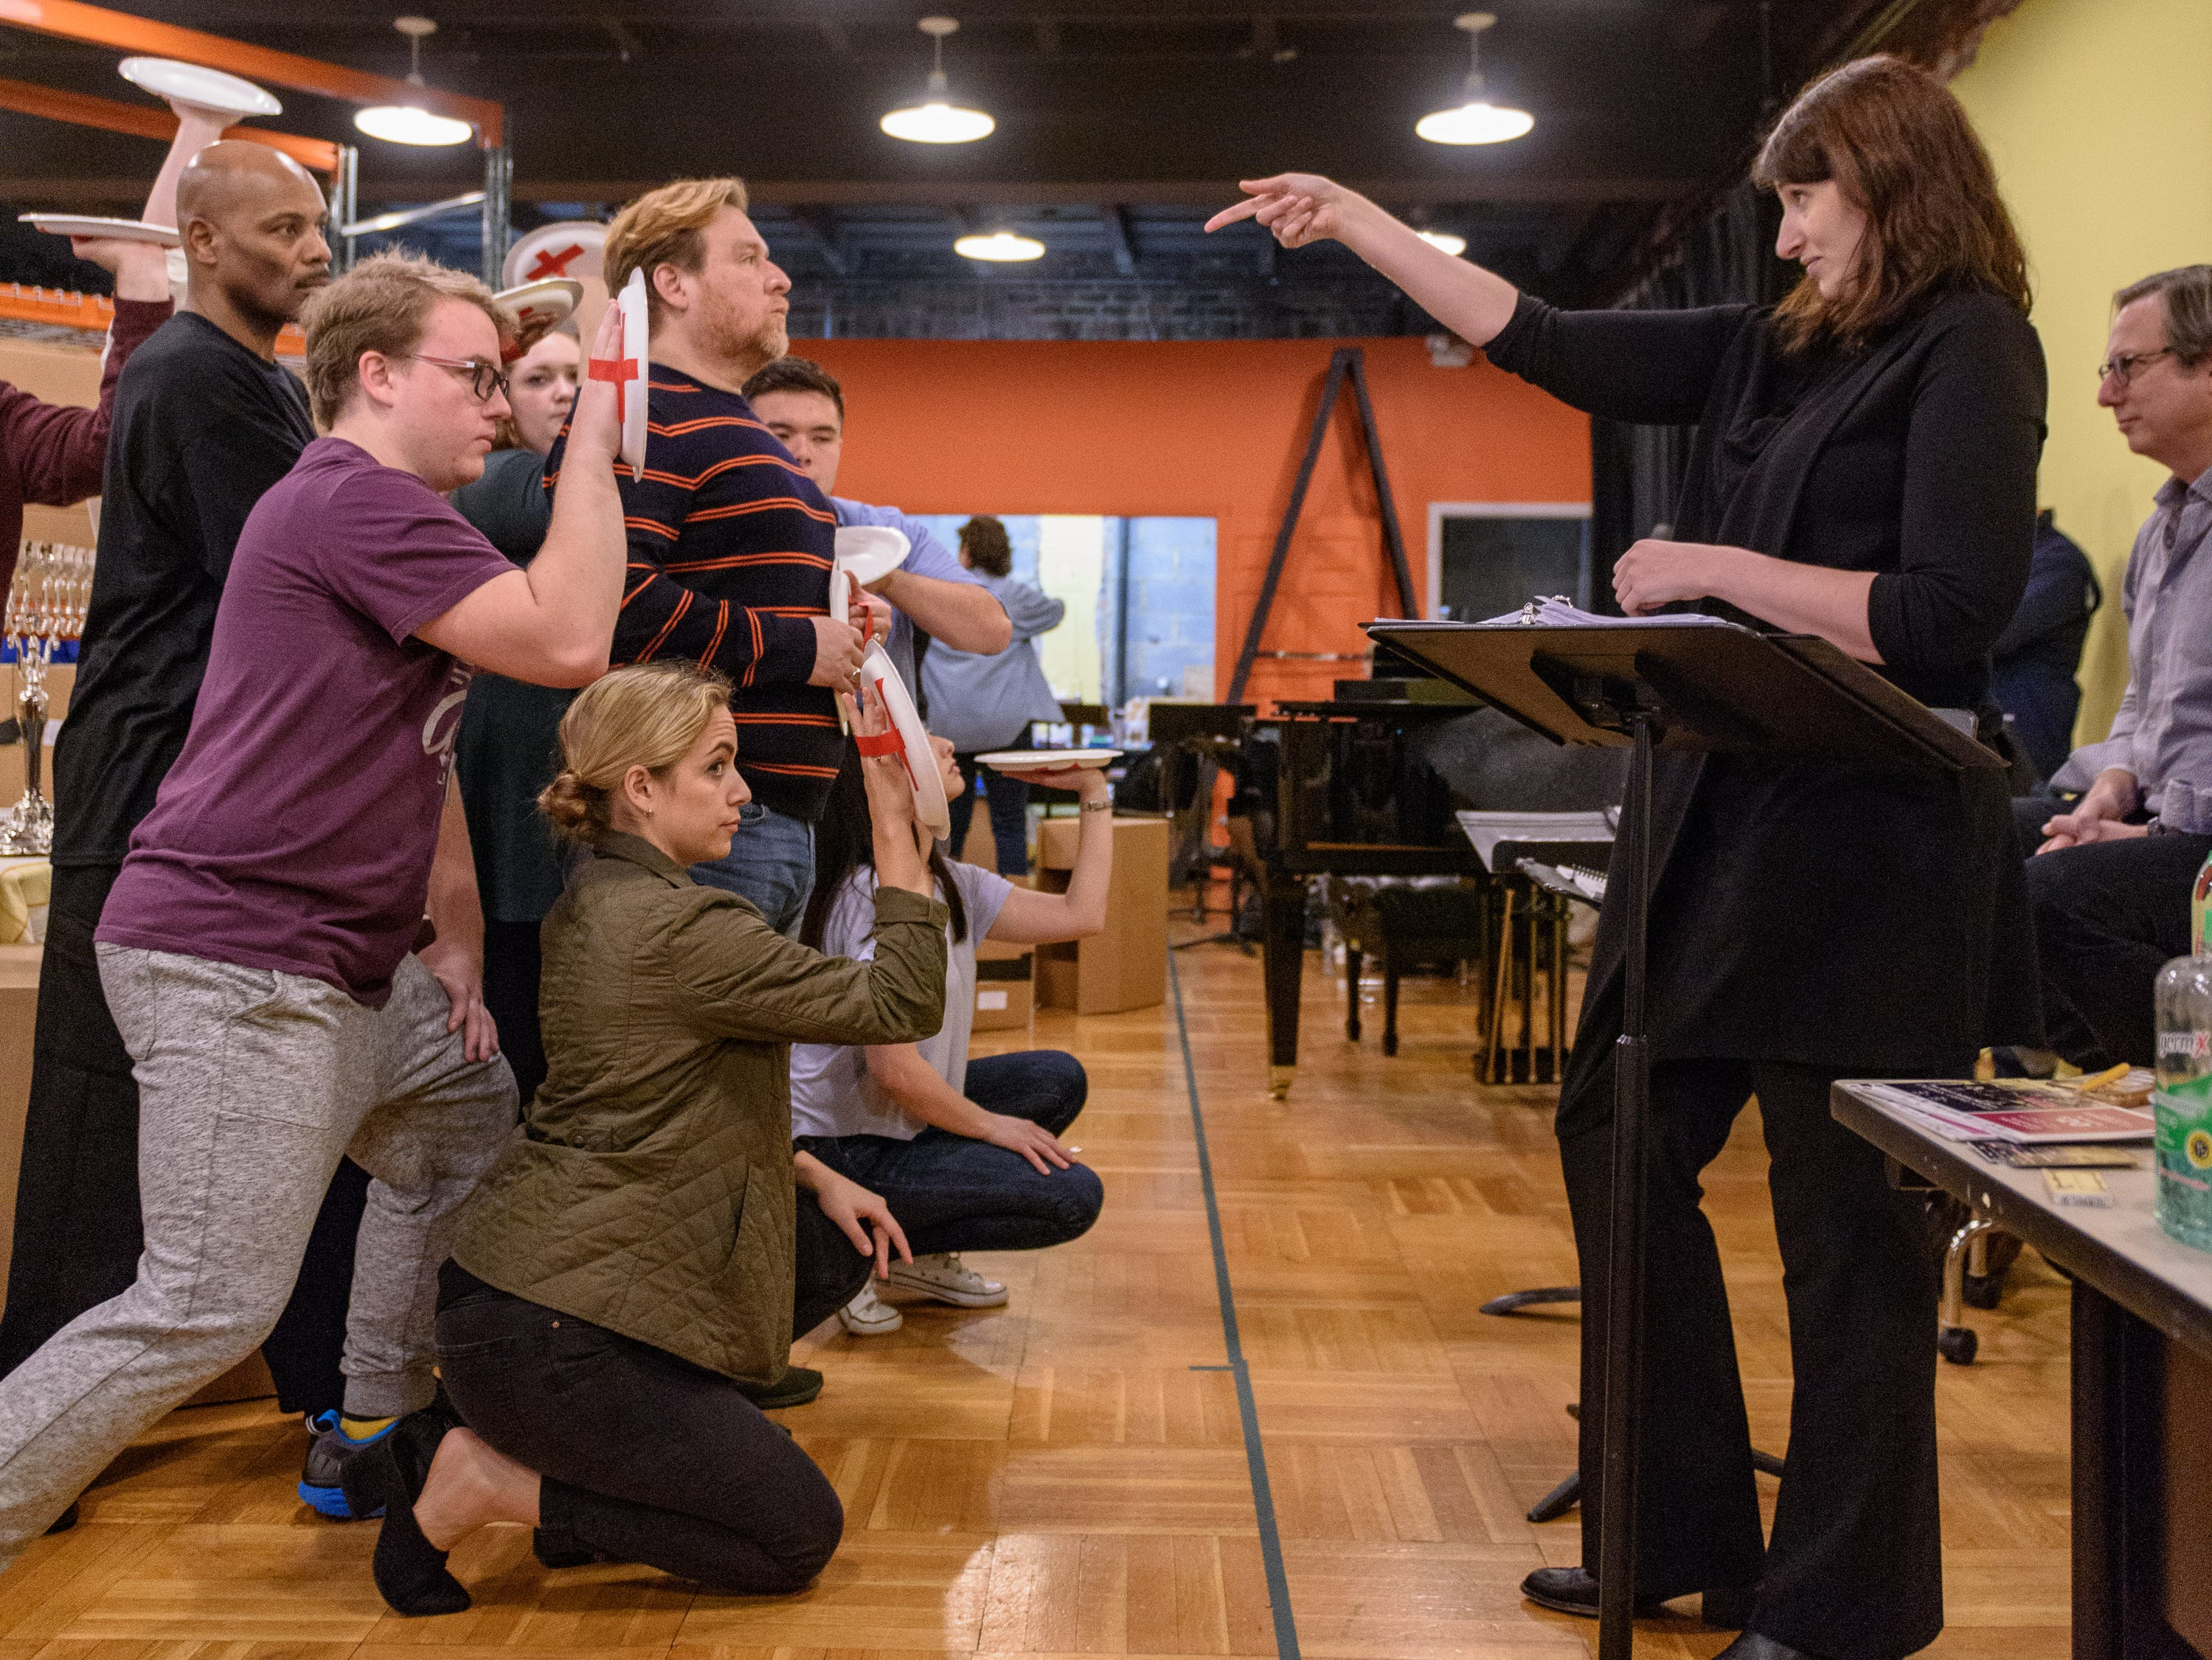 Mary Birnbaum directs the Hanukkah Party scene in Act 2 as Kentucky Opera works on their production of ÒEnemies, A Love Story,Ó in their rehearsal space at the Brown Theater. Oct. 27, 2018